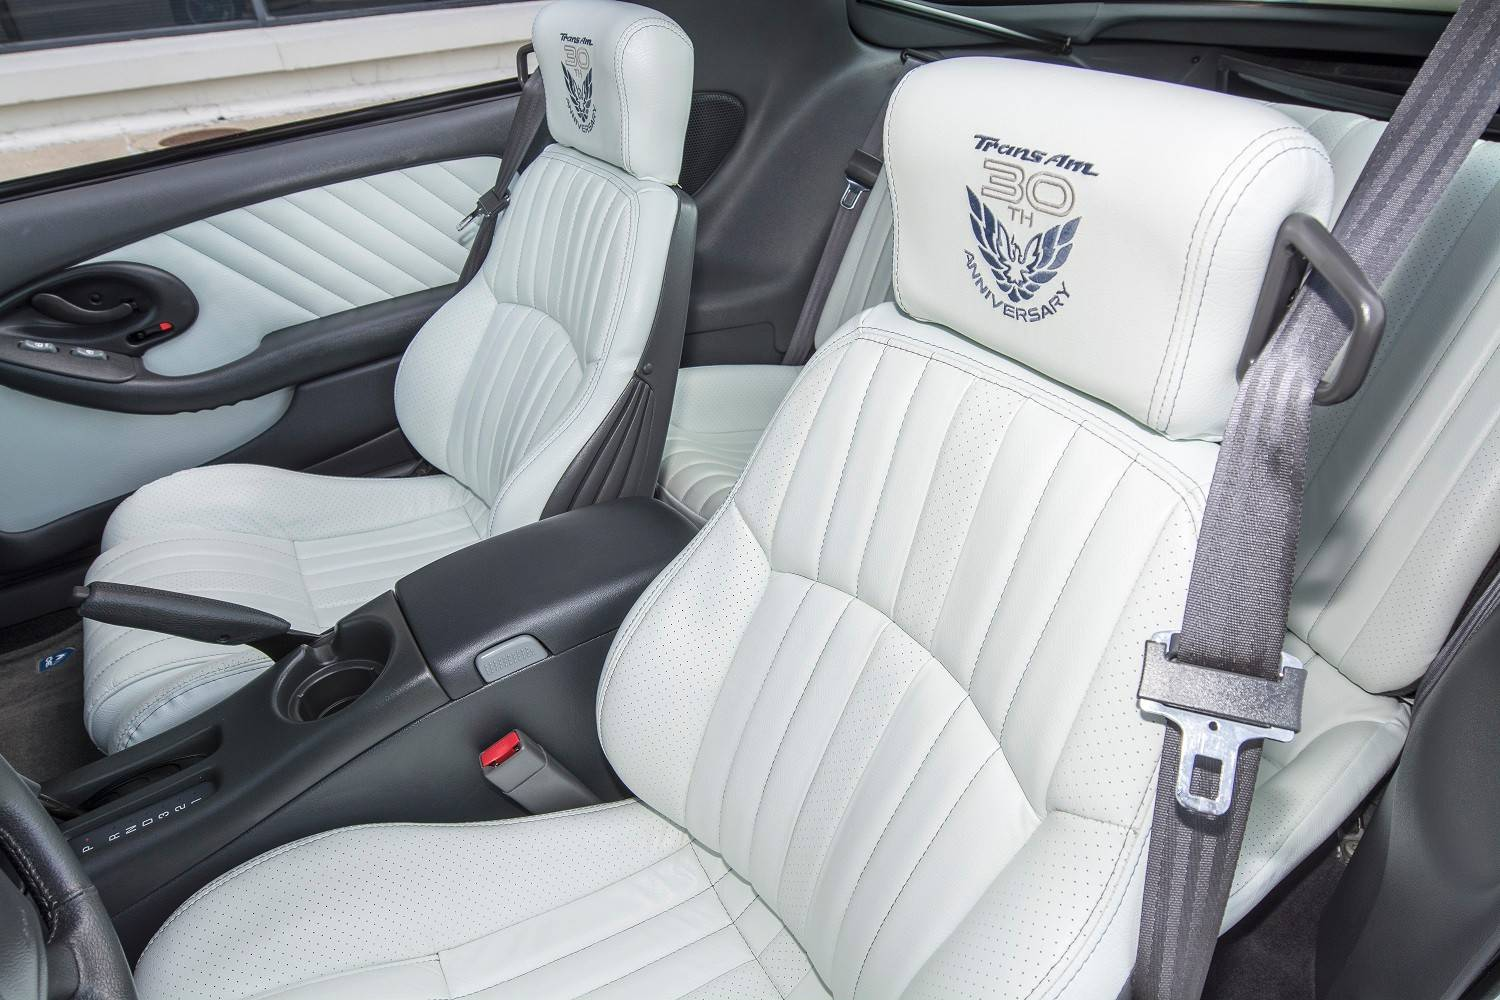 The white leather seats in the Trans Am are a considerable upgrade over the upholstery in the original 1969 models.